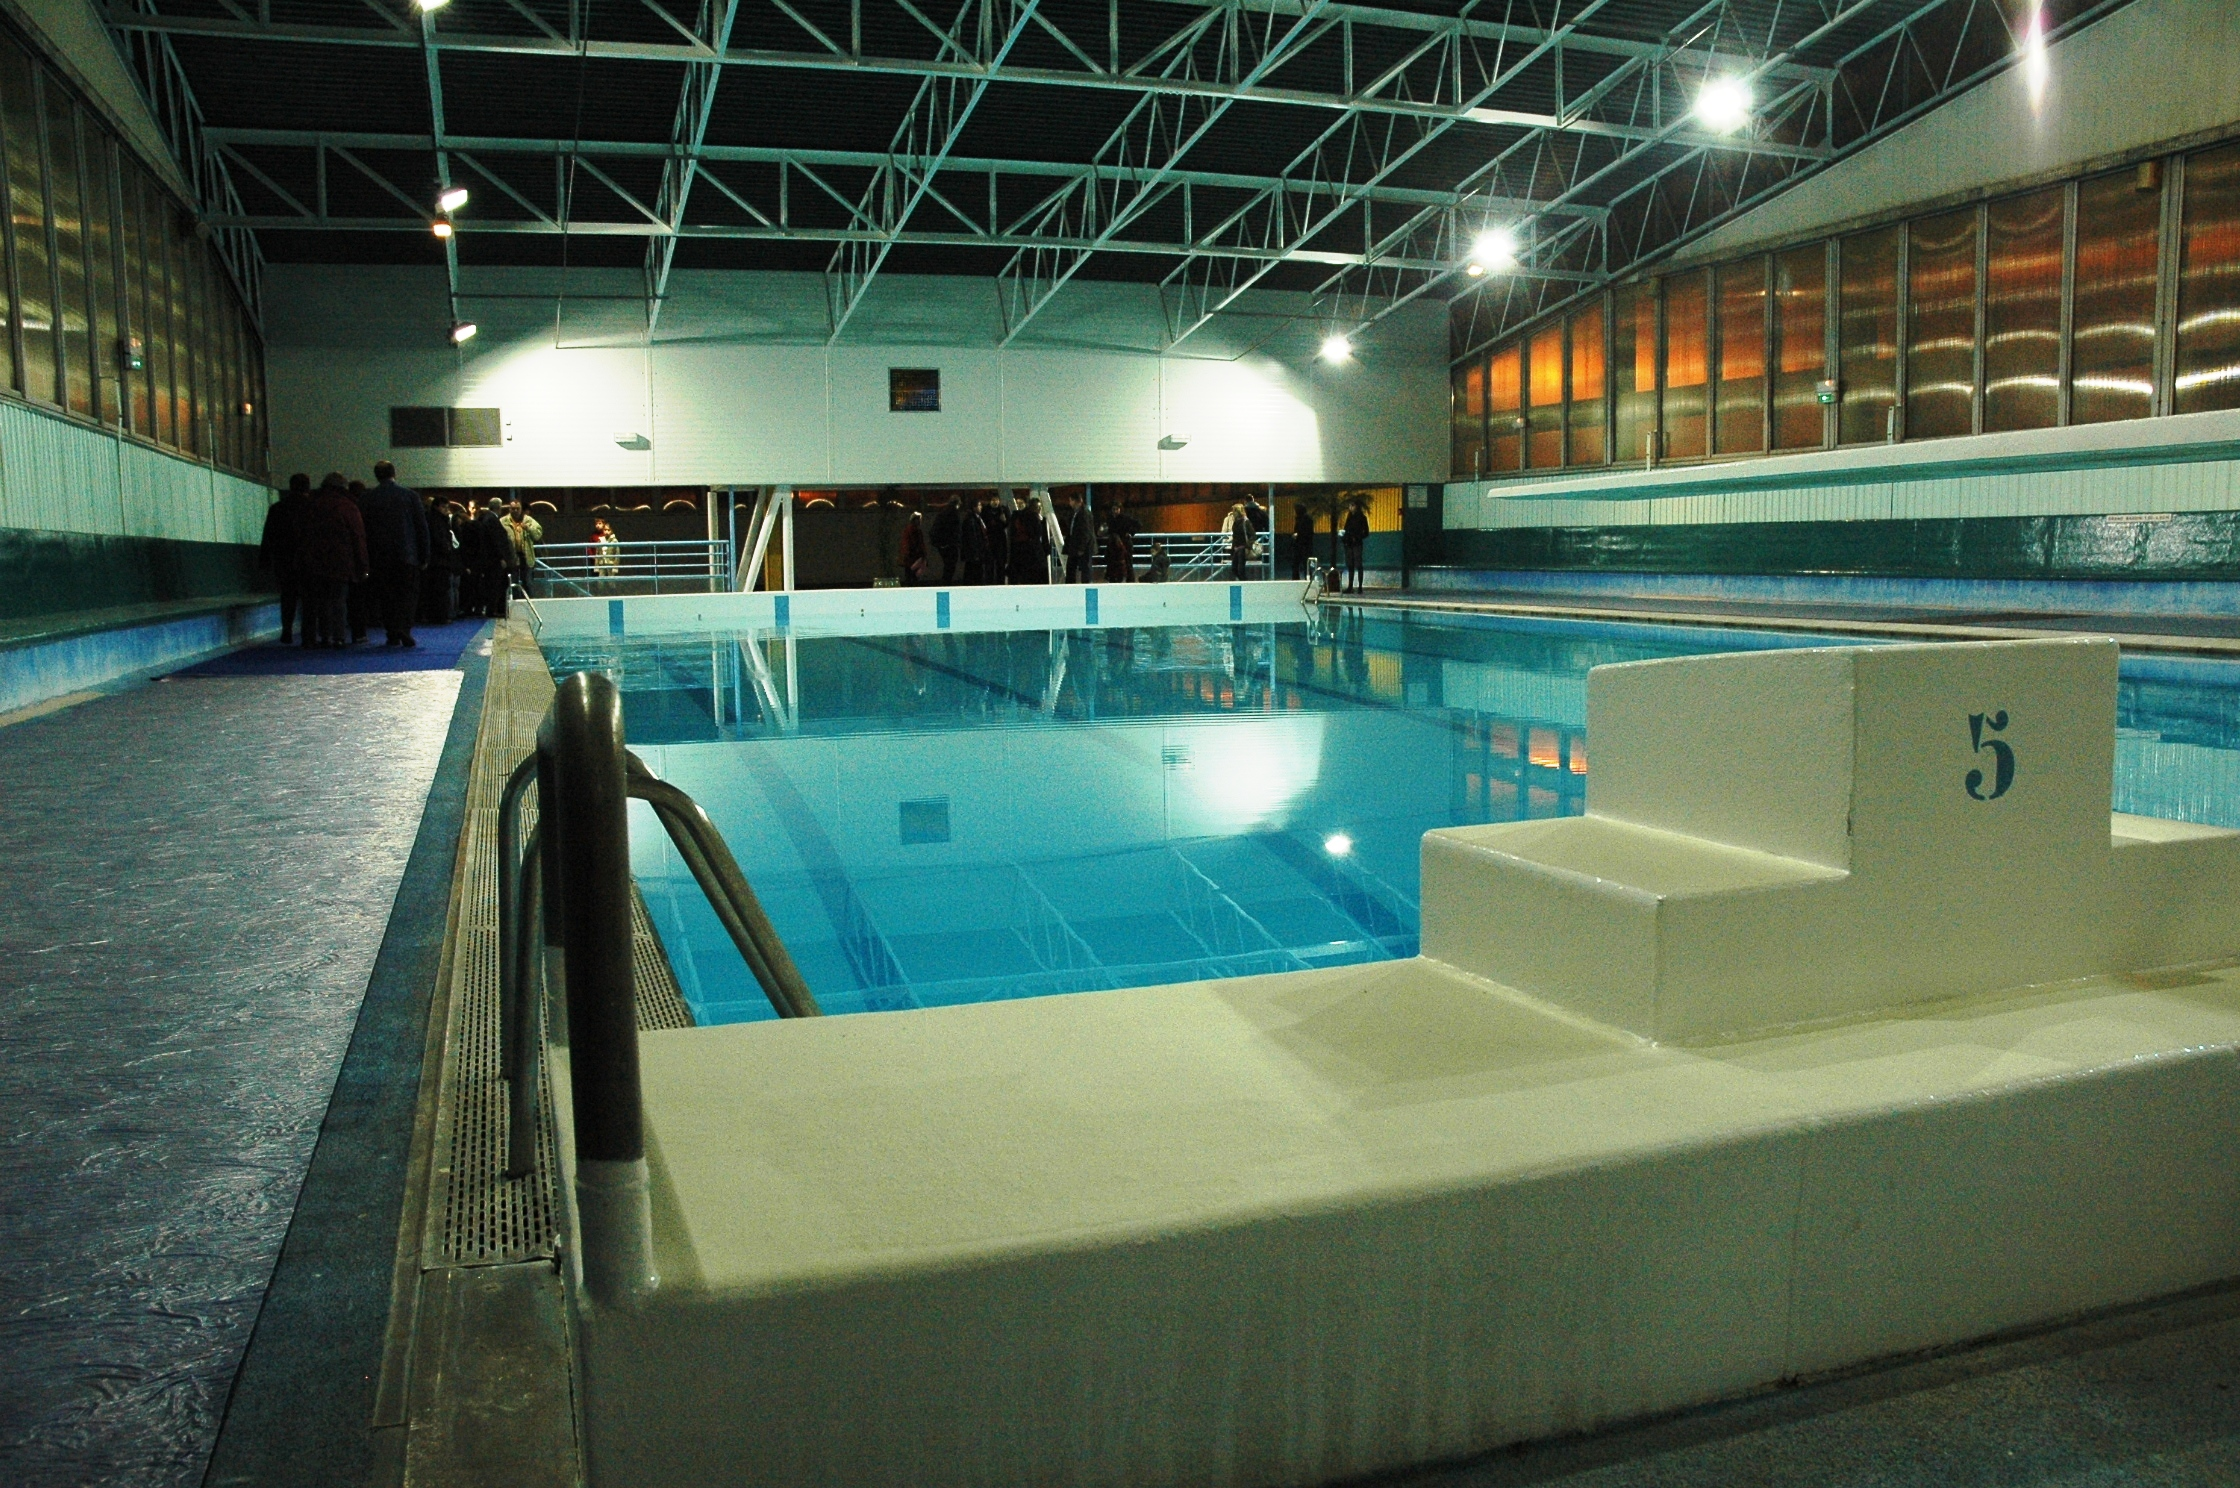 La piscine culture sports loisirs ville de saint andr for Piscine saintes